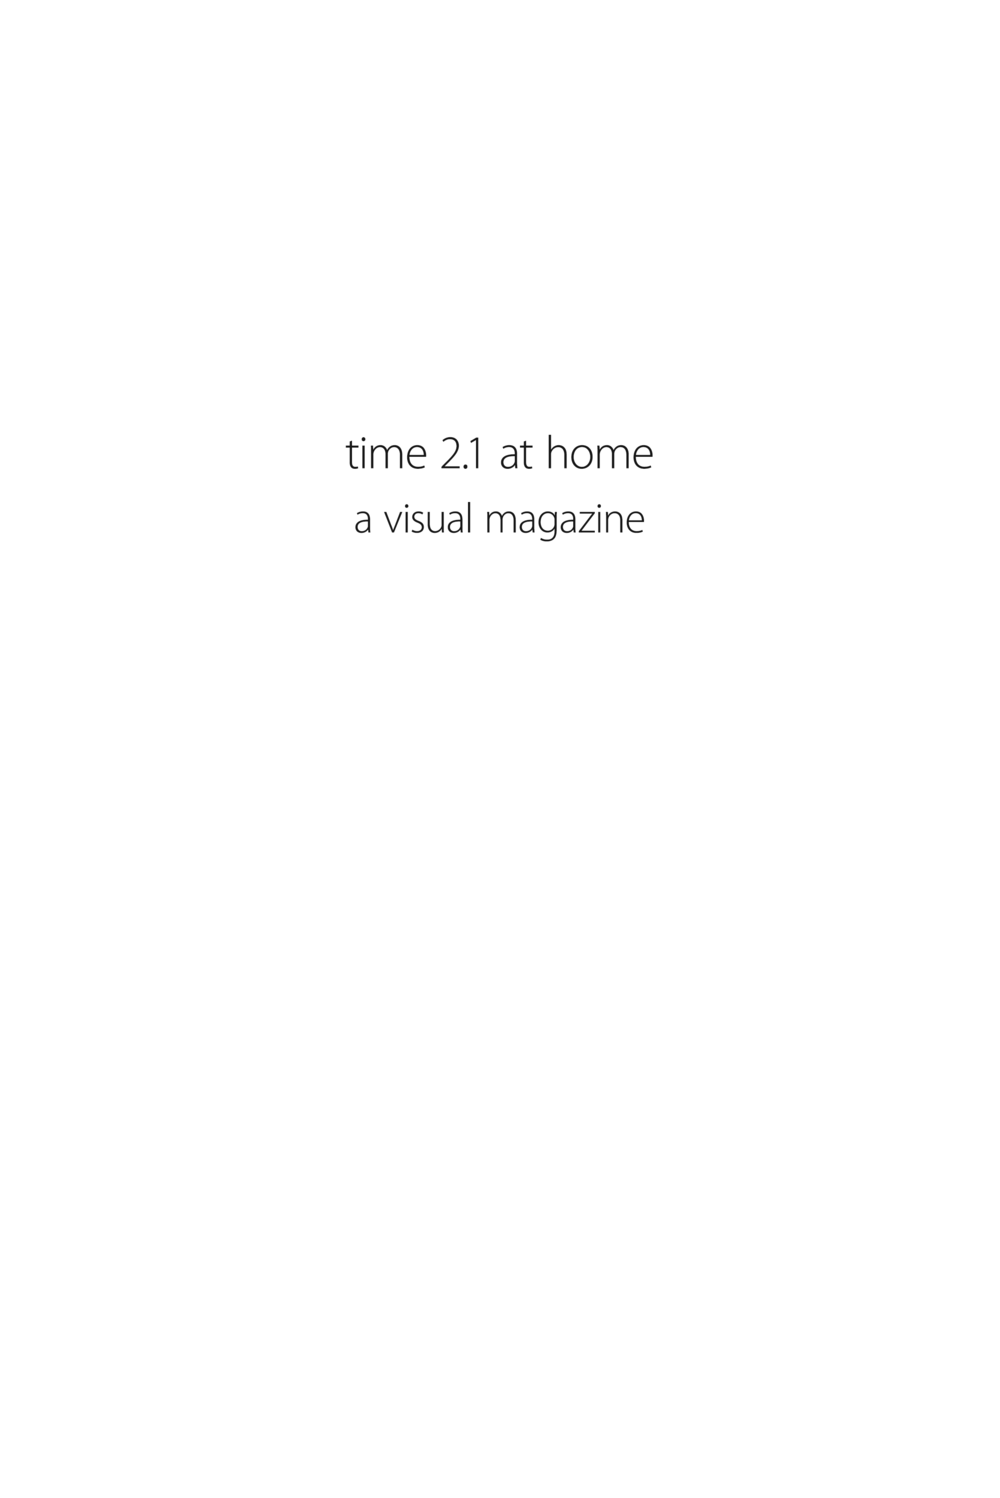 Cover NEWTIME time 21 home.png